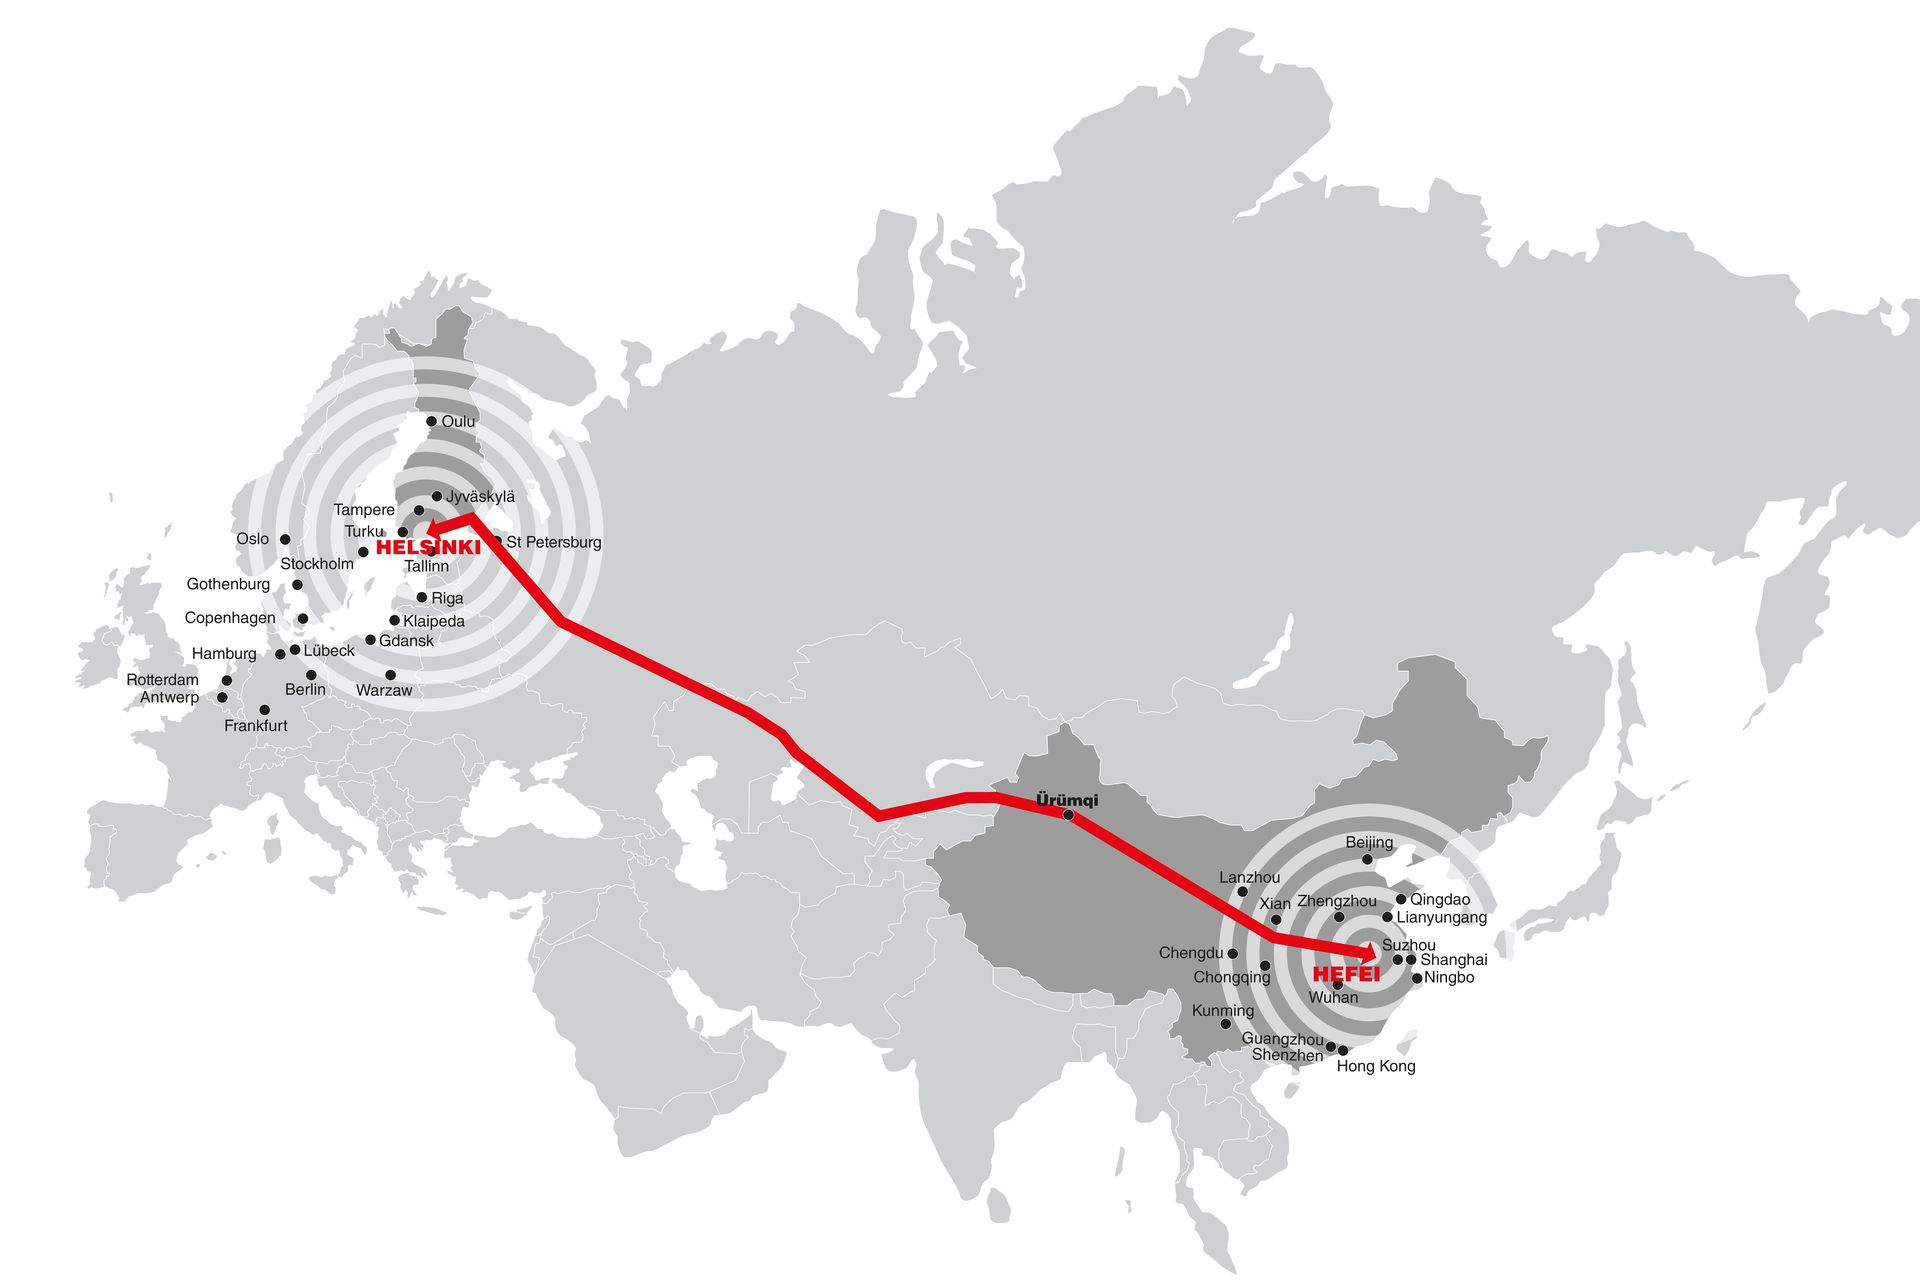 From Helsinki to Hefei